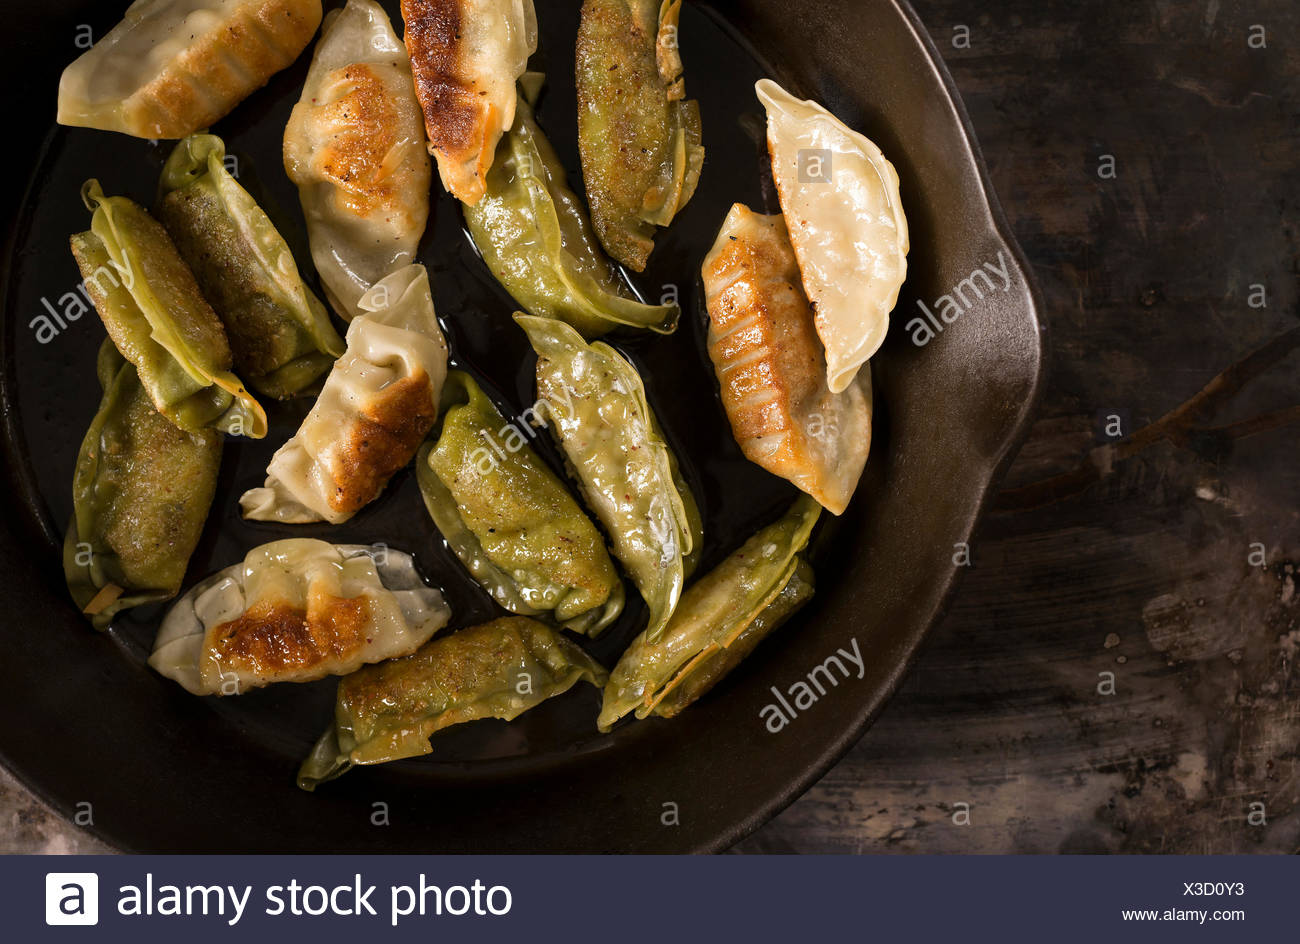 Variety of pan fried pork and vegetable pot stickers in a skillet on a rustic metal surface. - Stock Image